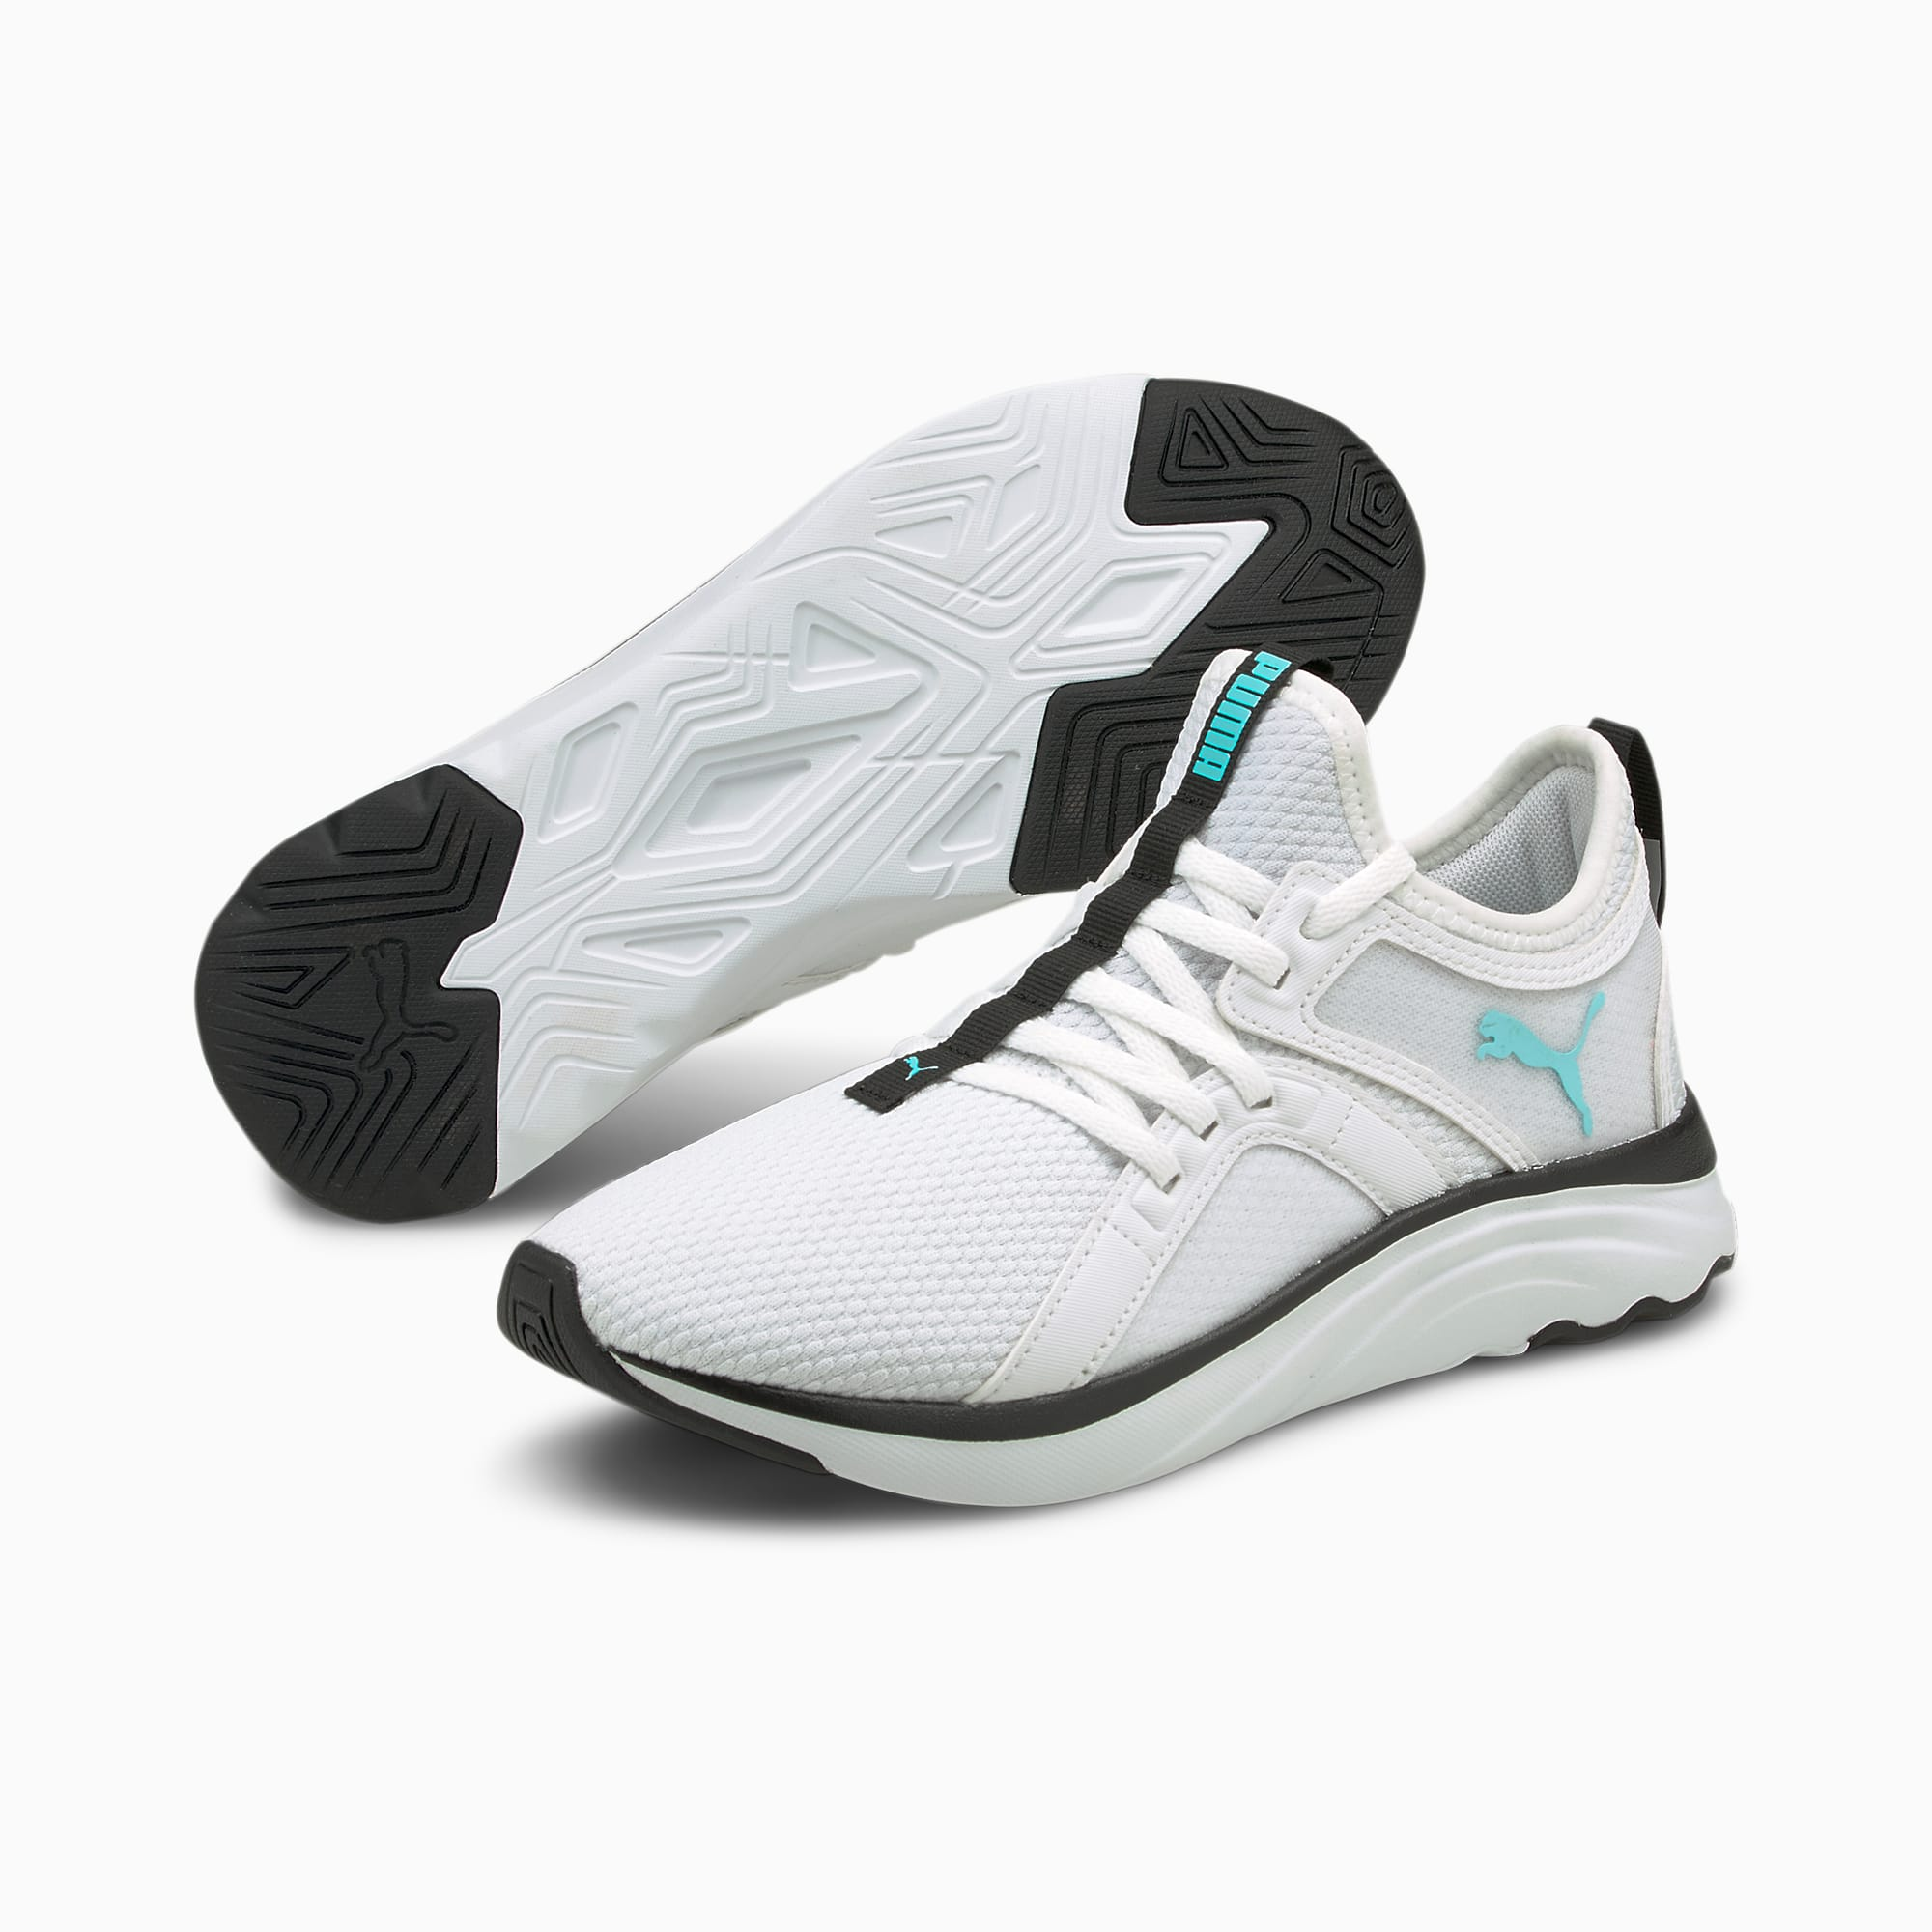 SoftRide Sophia Women's Running Shoes by Puma, available on puma.com for $65 Selena Gomez Shoes Exact Product